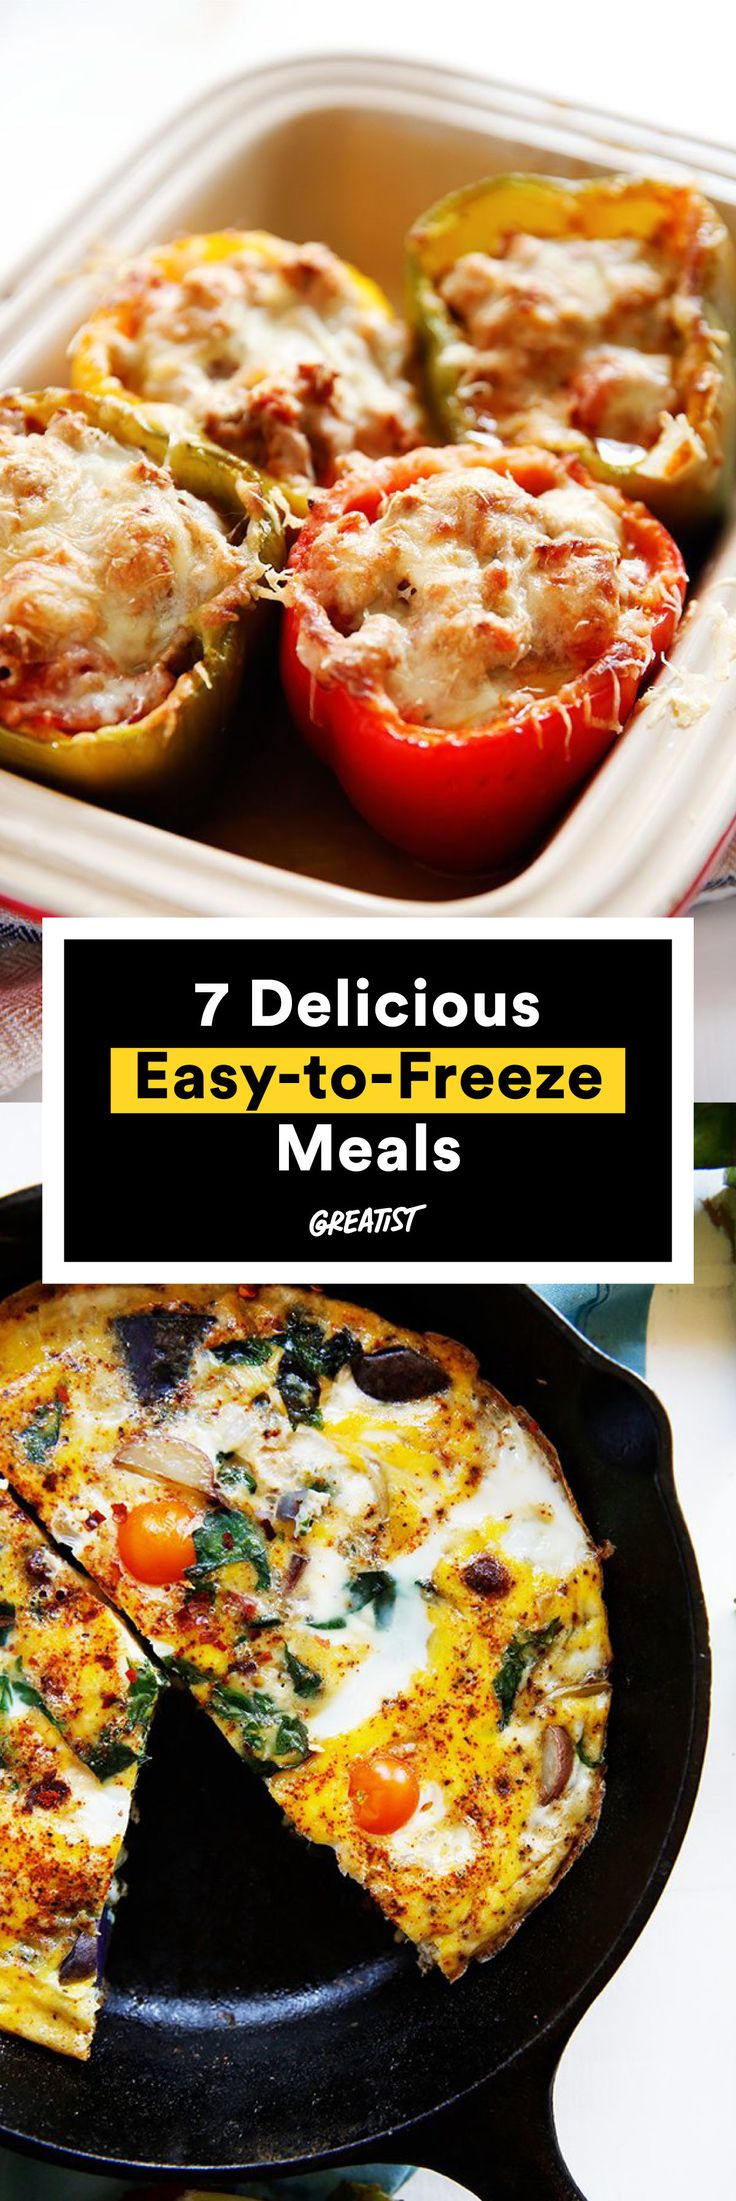 Ditch that frozen burrito.  #greatist http://greatist.com/eat/easy-meals-to-freeze-for-later